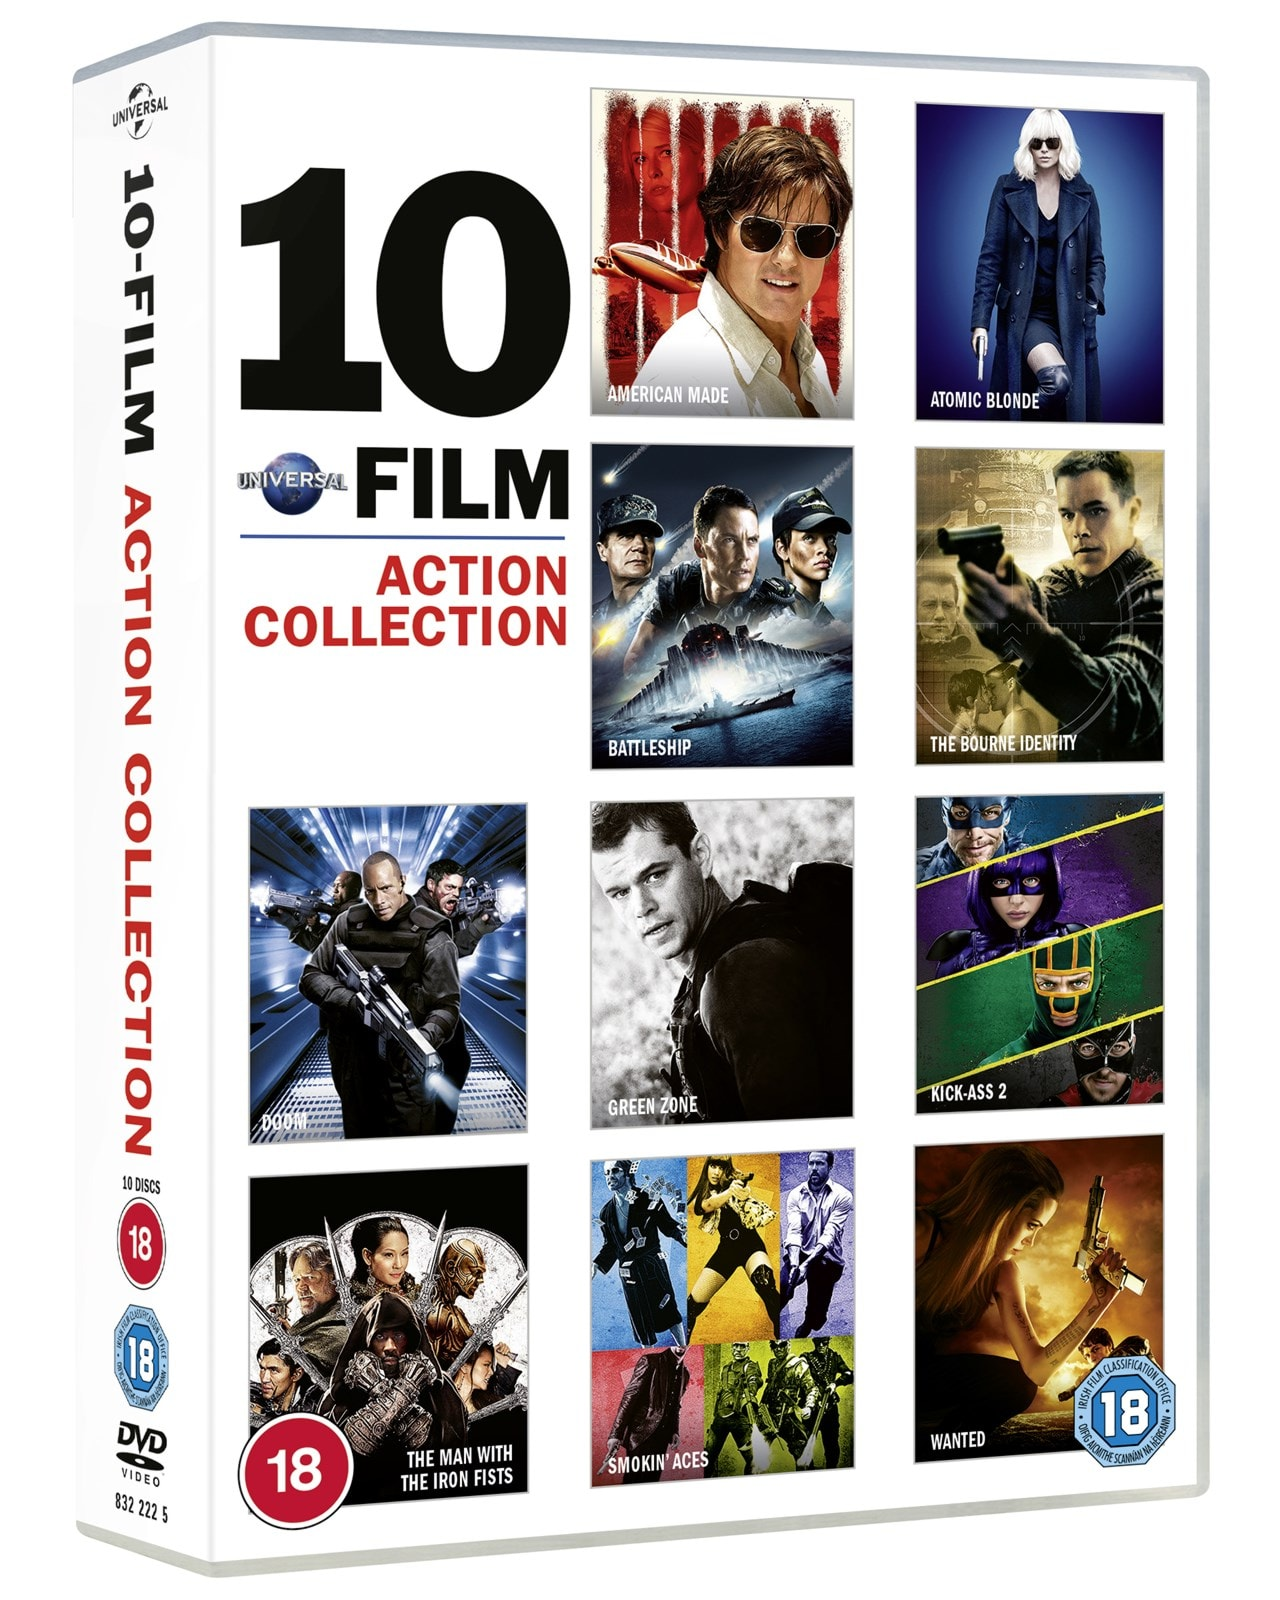 10 Film Action Collection - 2